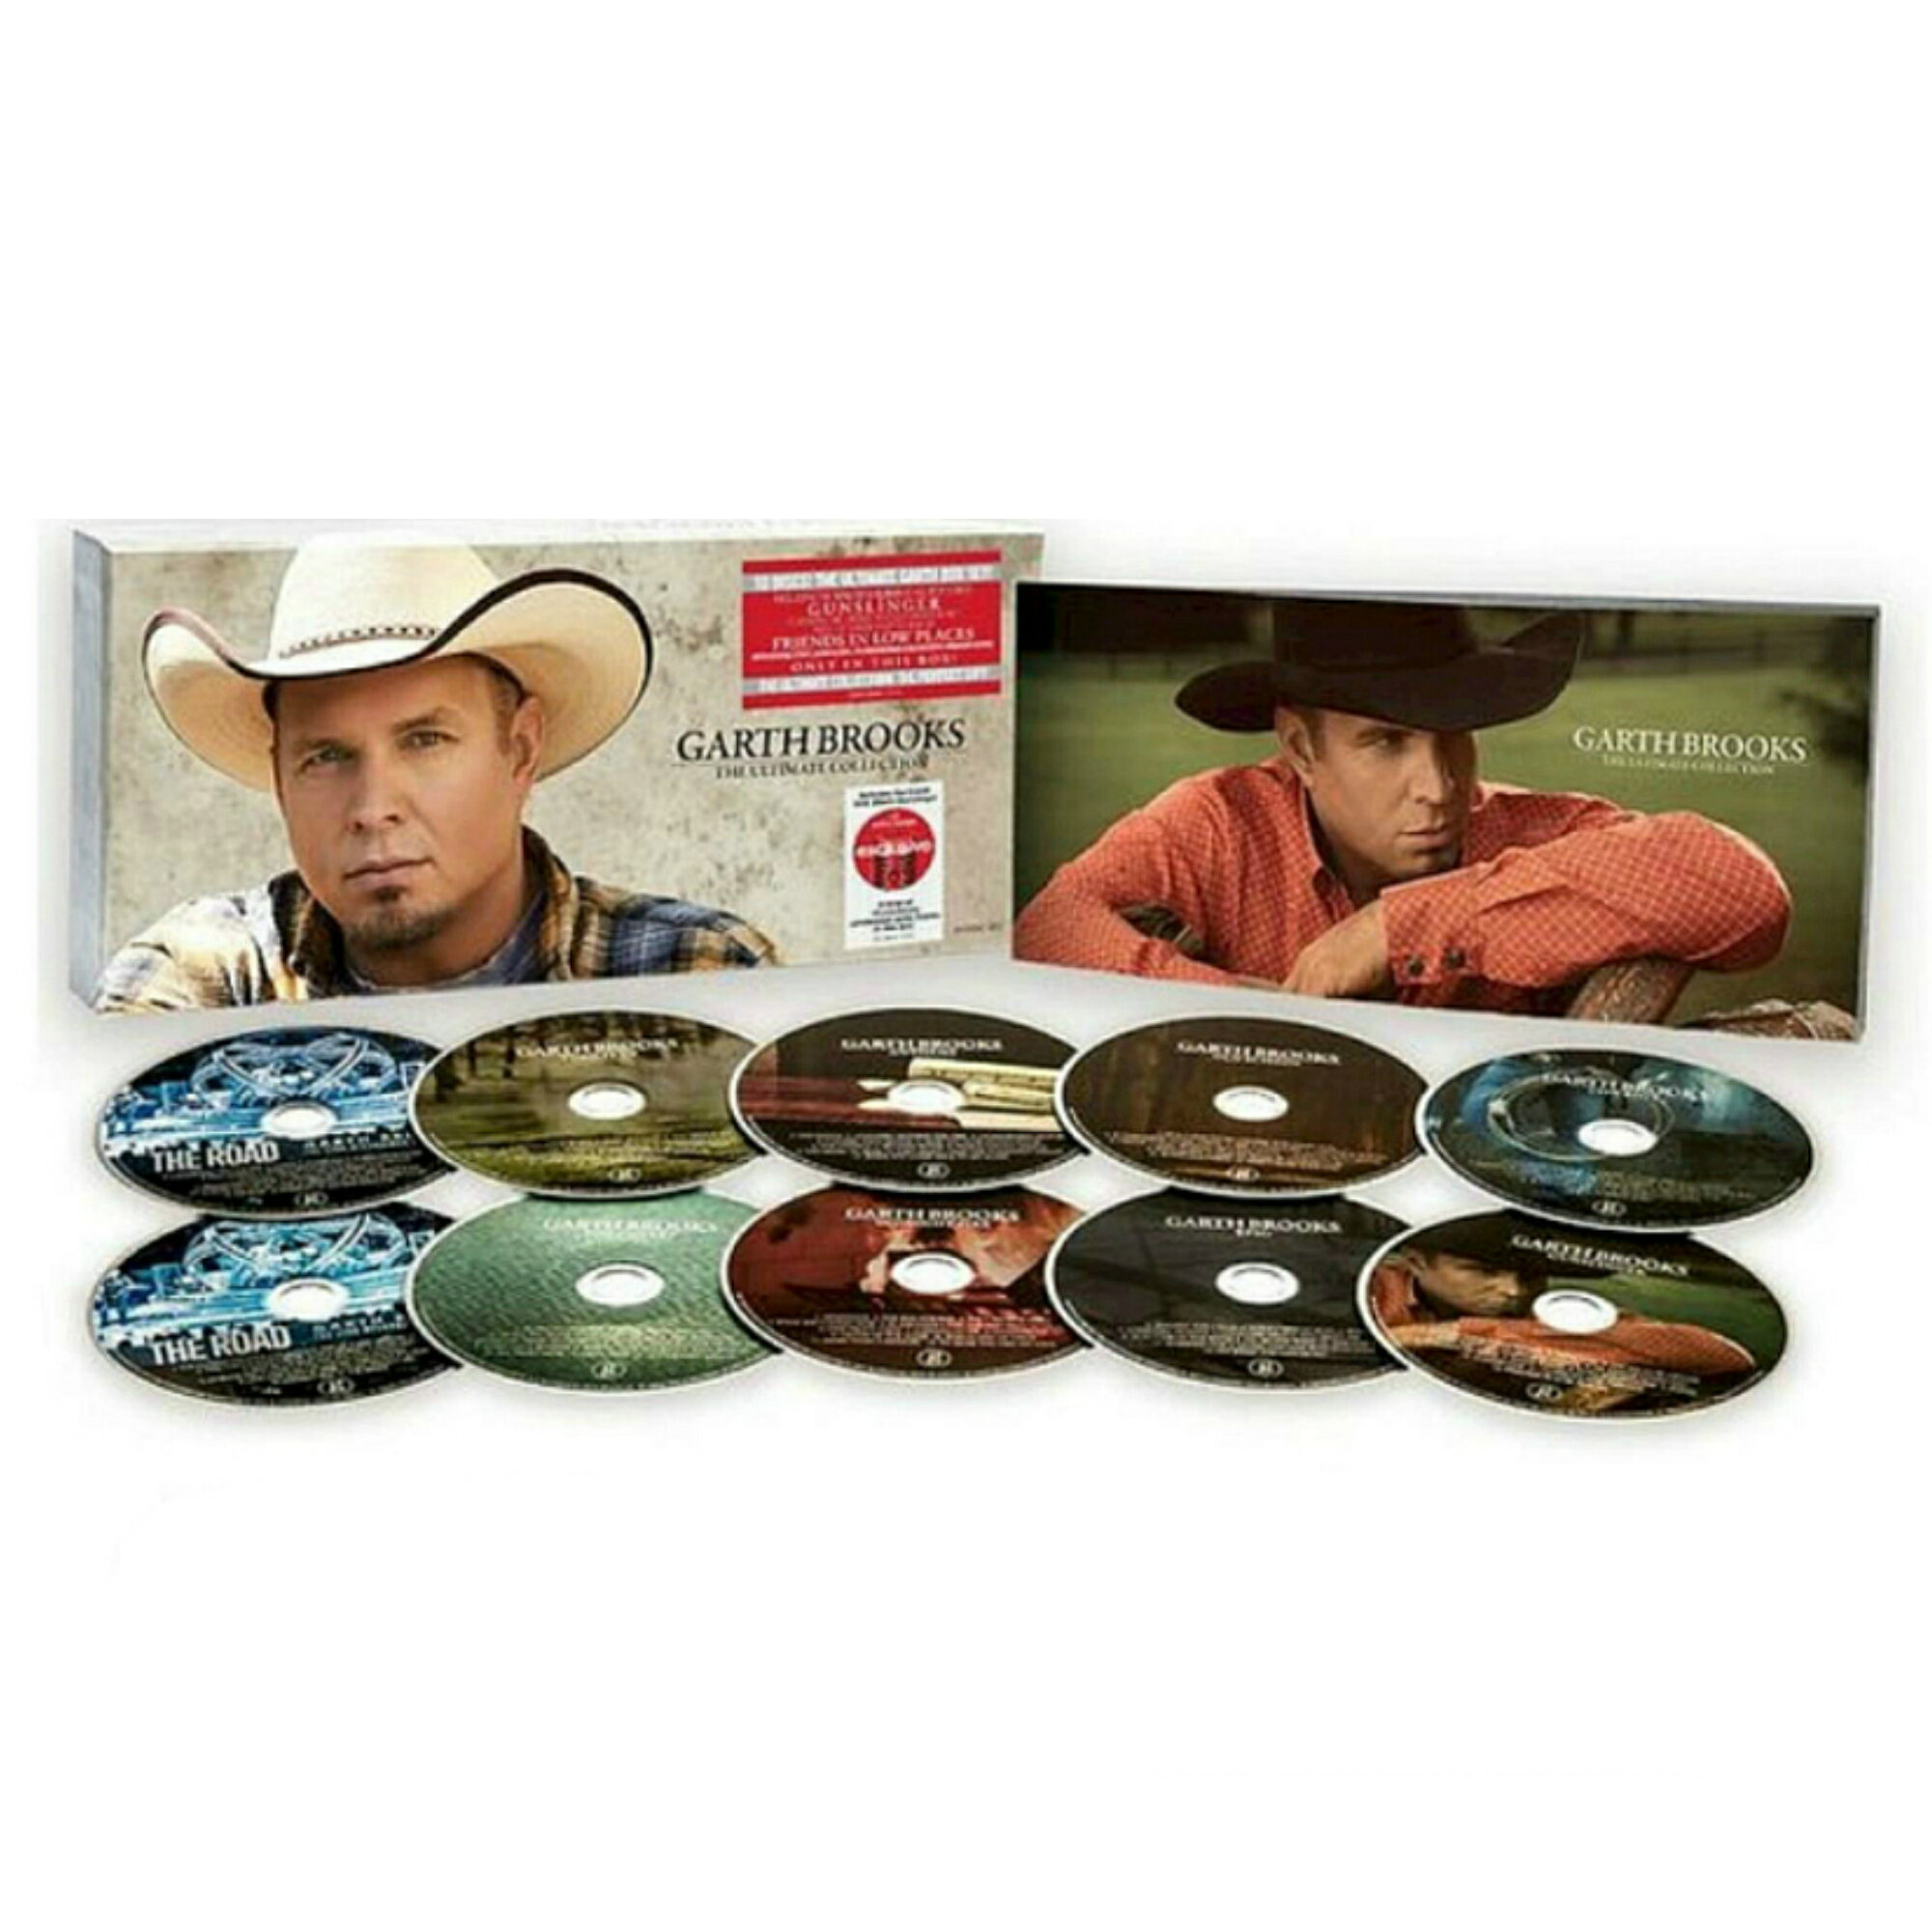 Garth Brooks Ultimate Collection 10 CD Target Exclusive Boxset Gunslinger 0